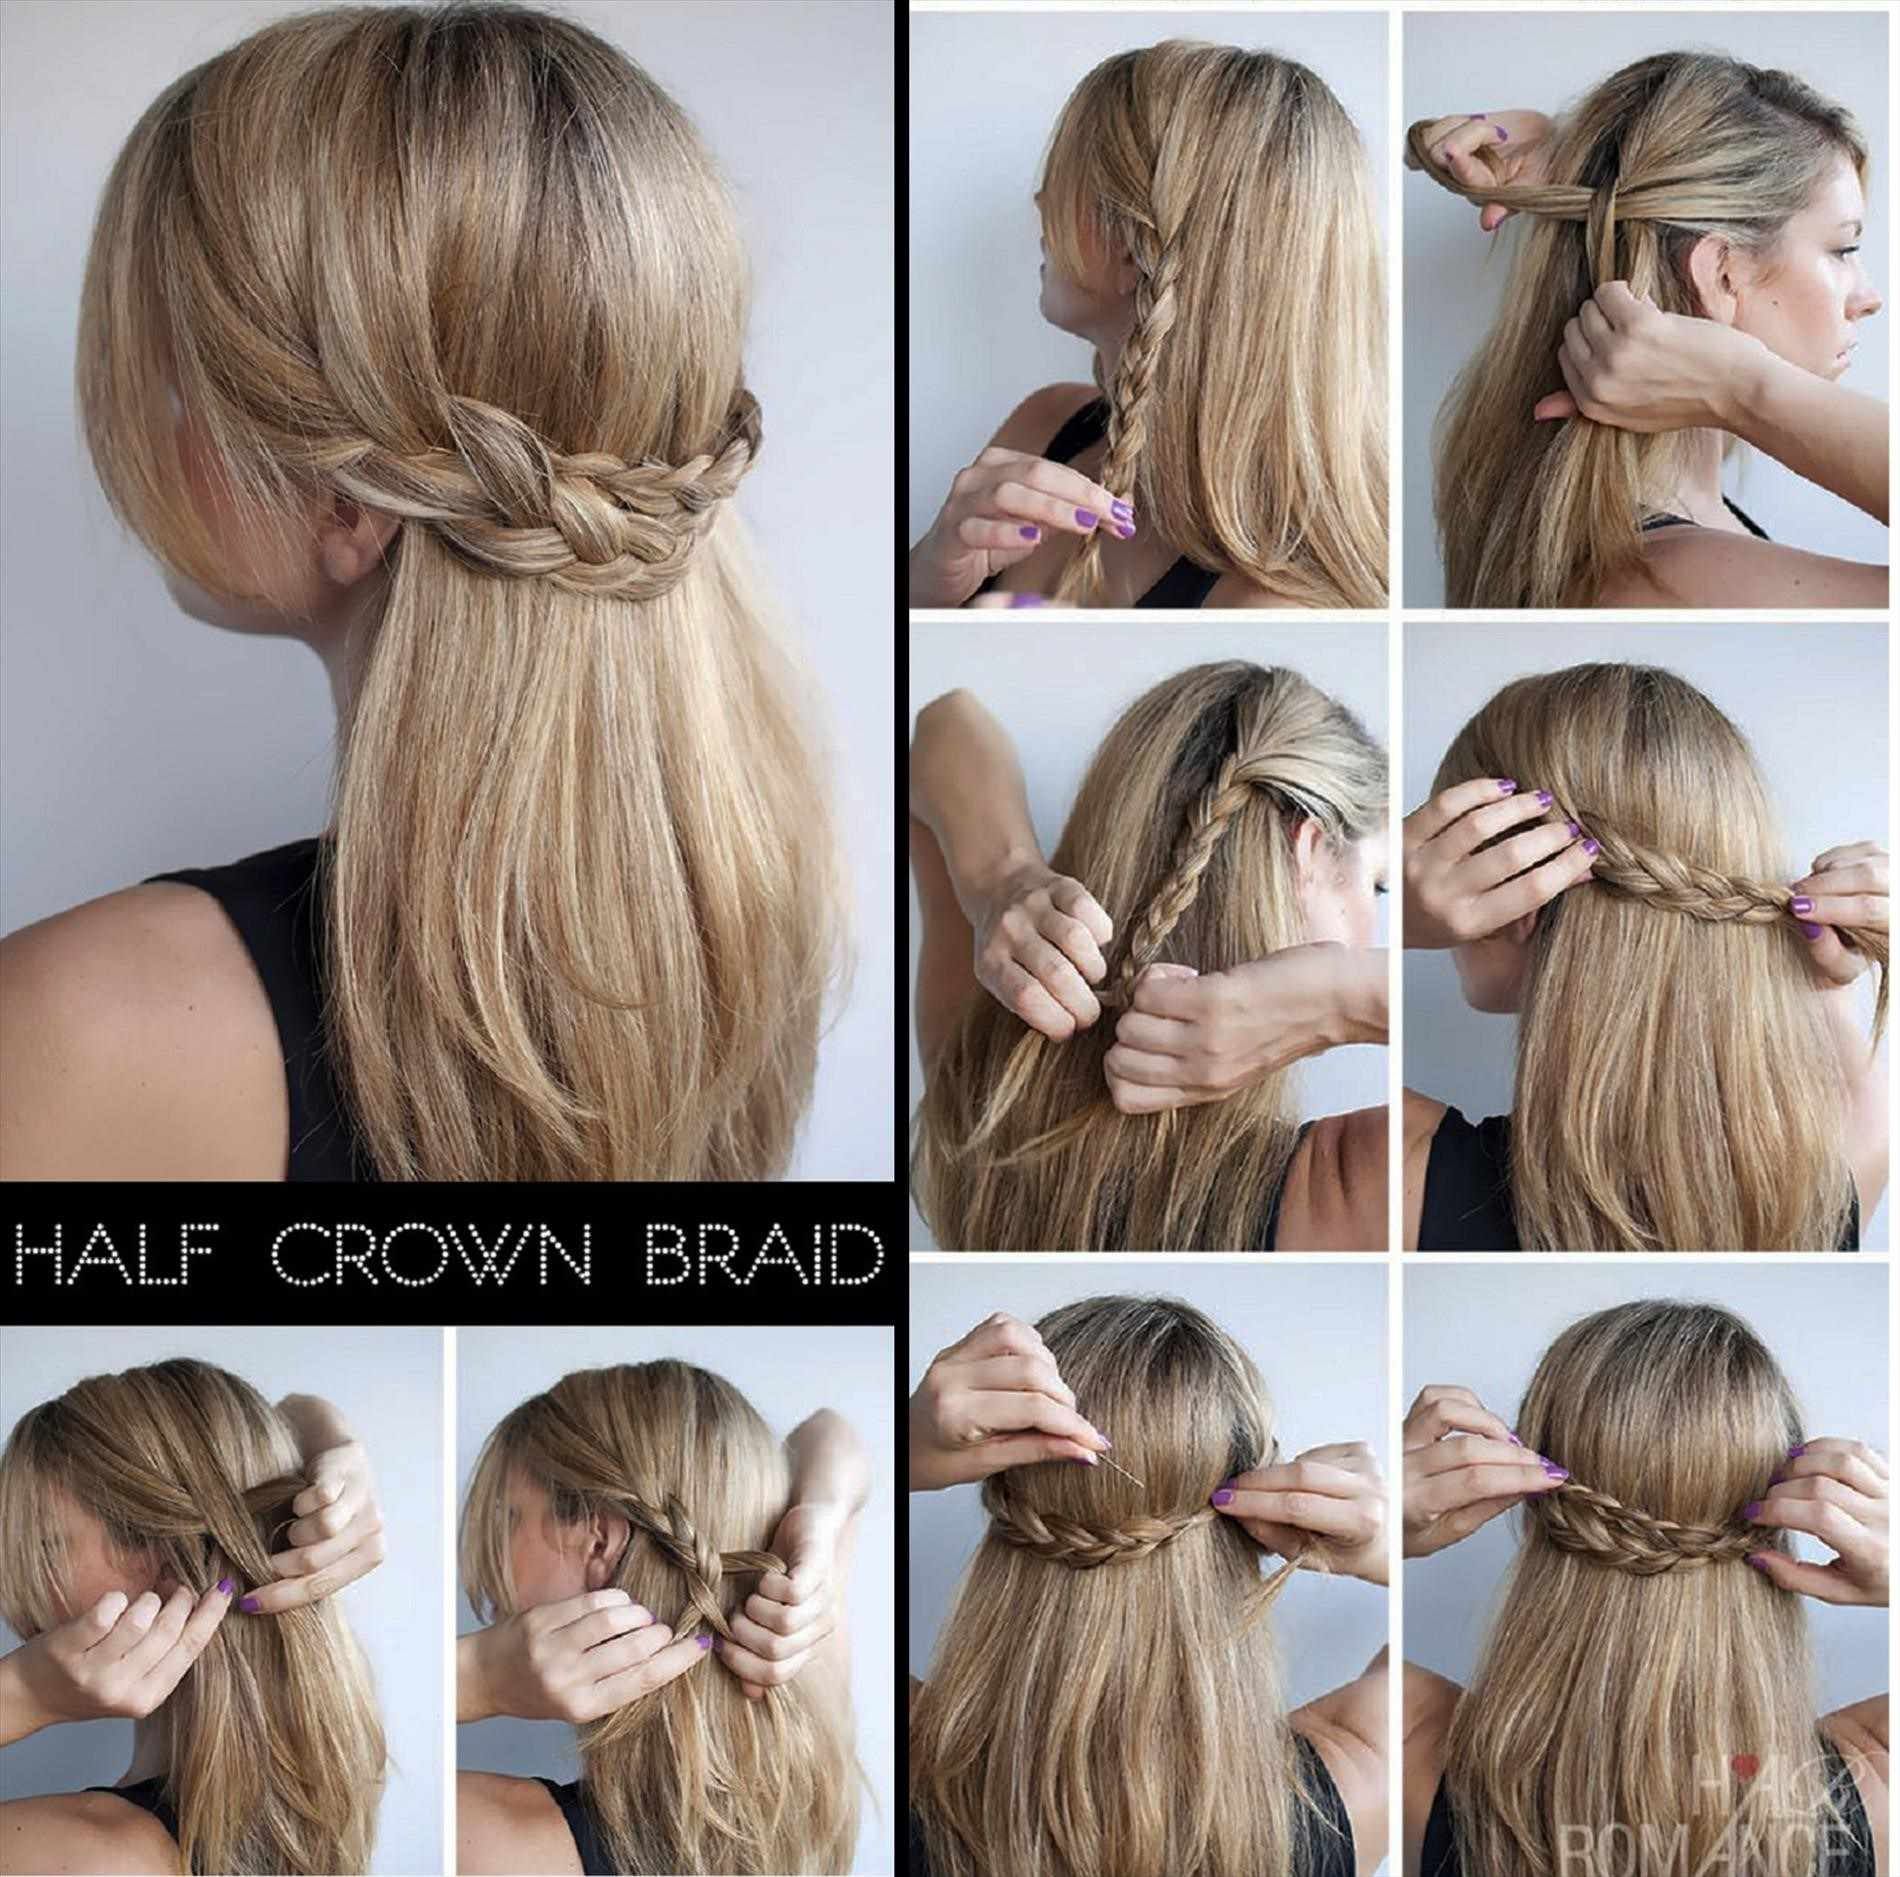 15 Easy Rules Of Simple Hairstyle For Party Simple Hair Styles Easy Party Hairstyles Girls Hairstyles Easy